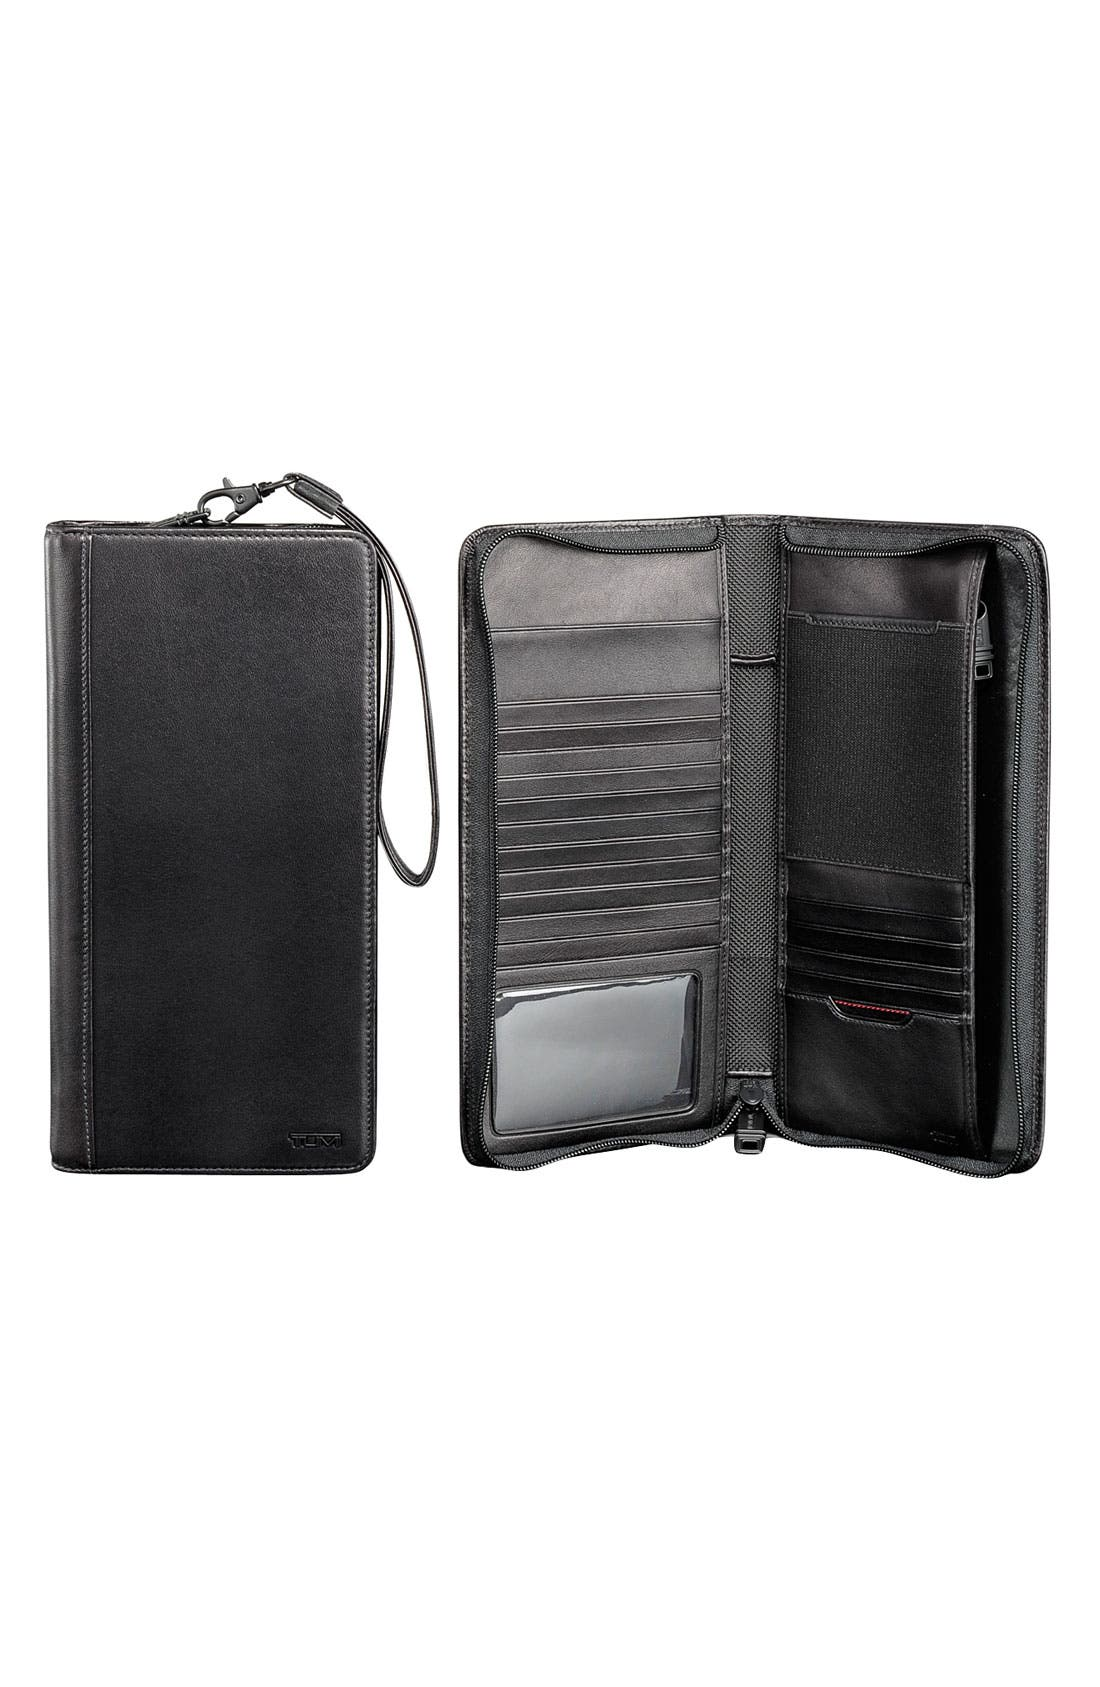 Alternate Image 1 Selected - Tumi 'Delta' Zip Travel Case